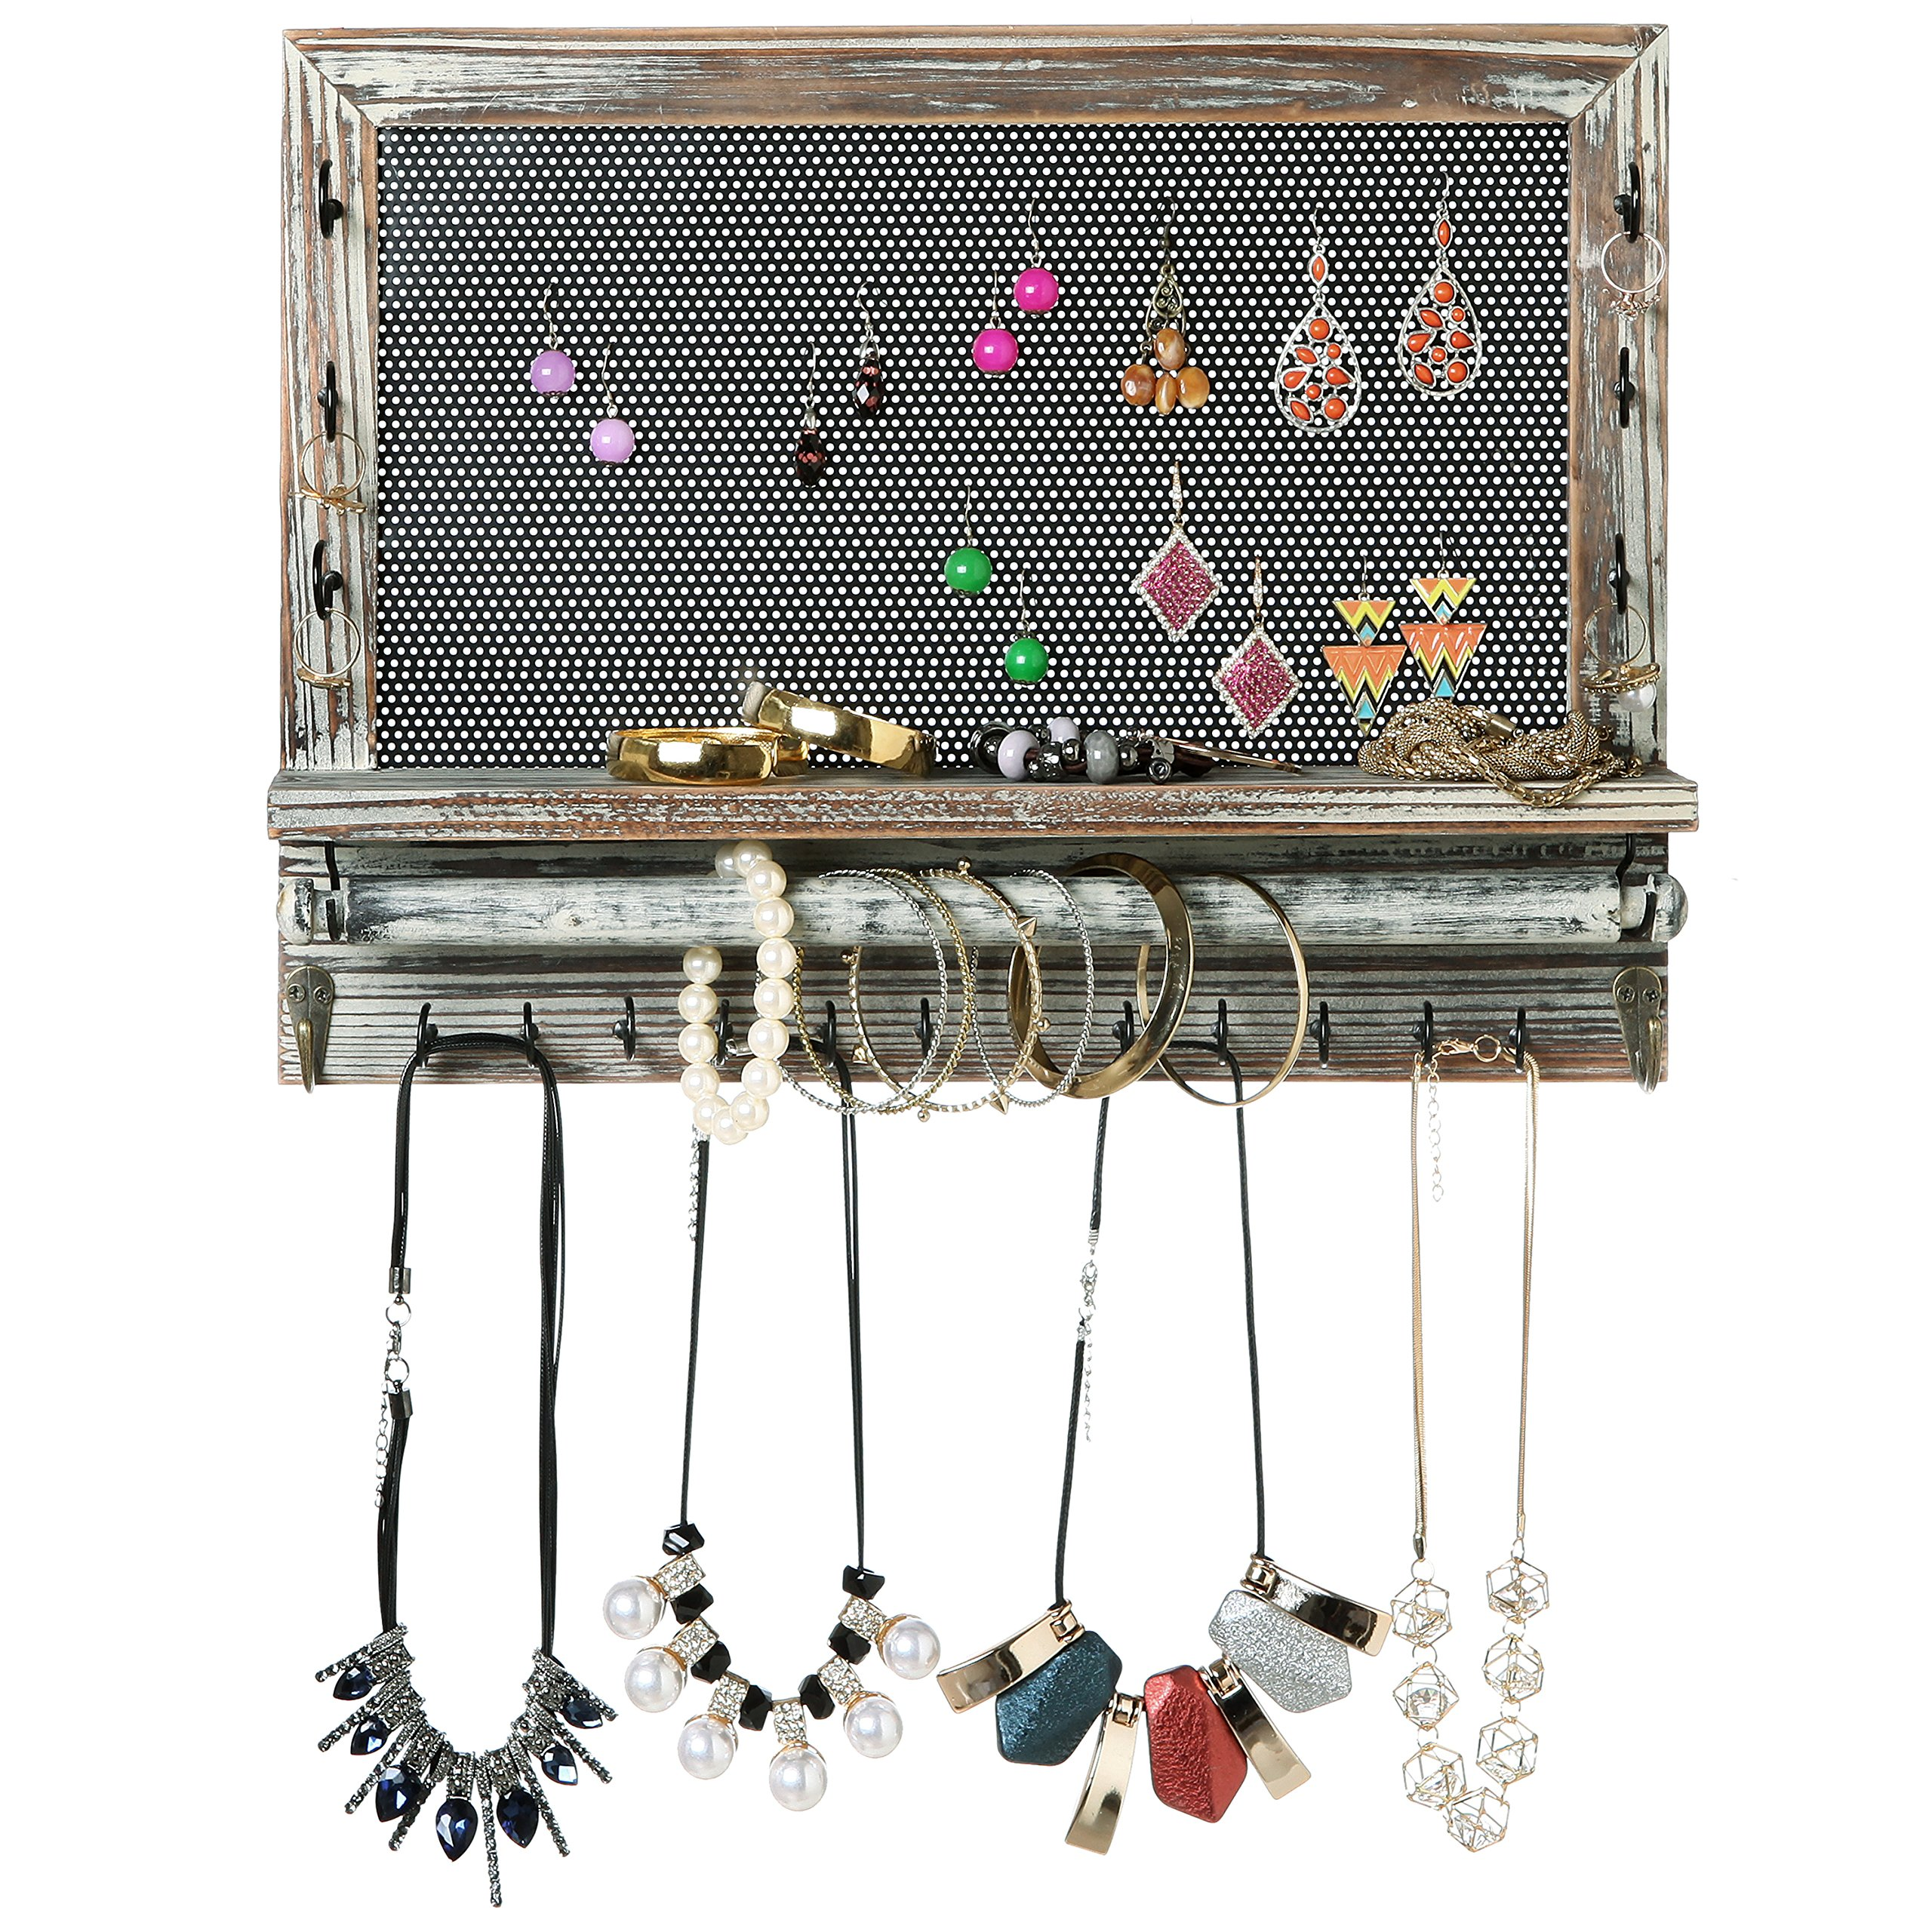 Rustic Wood & Metal Mesh Wall Mounted Jewelry Hanger, Necklaces, Bracelets & Earrings Organizer Rack by MyGift (Image #2)